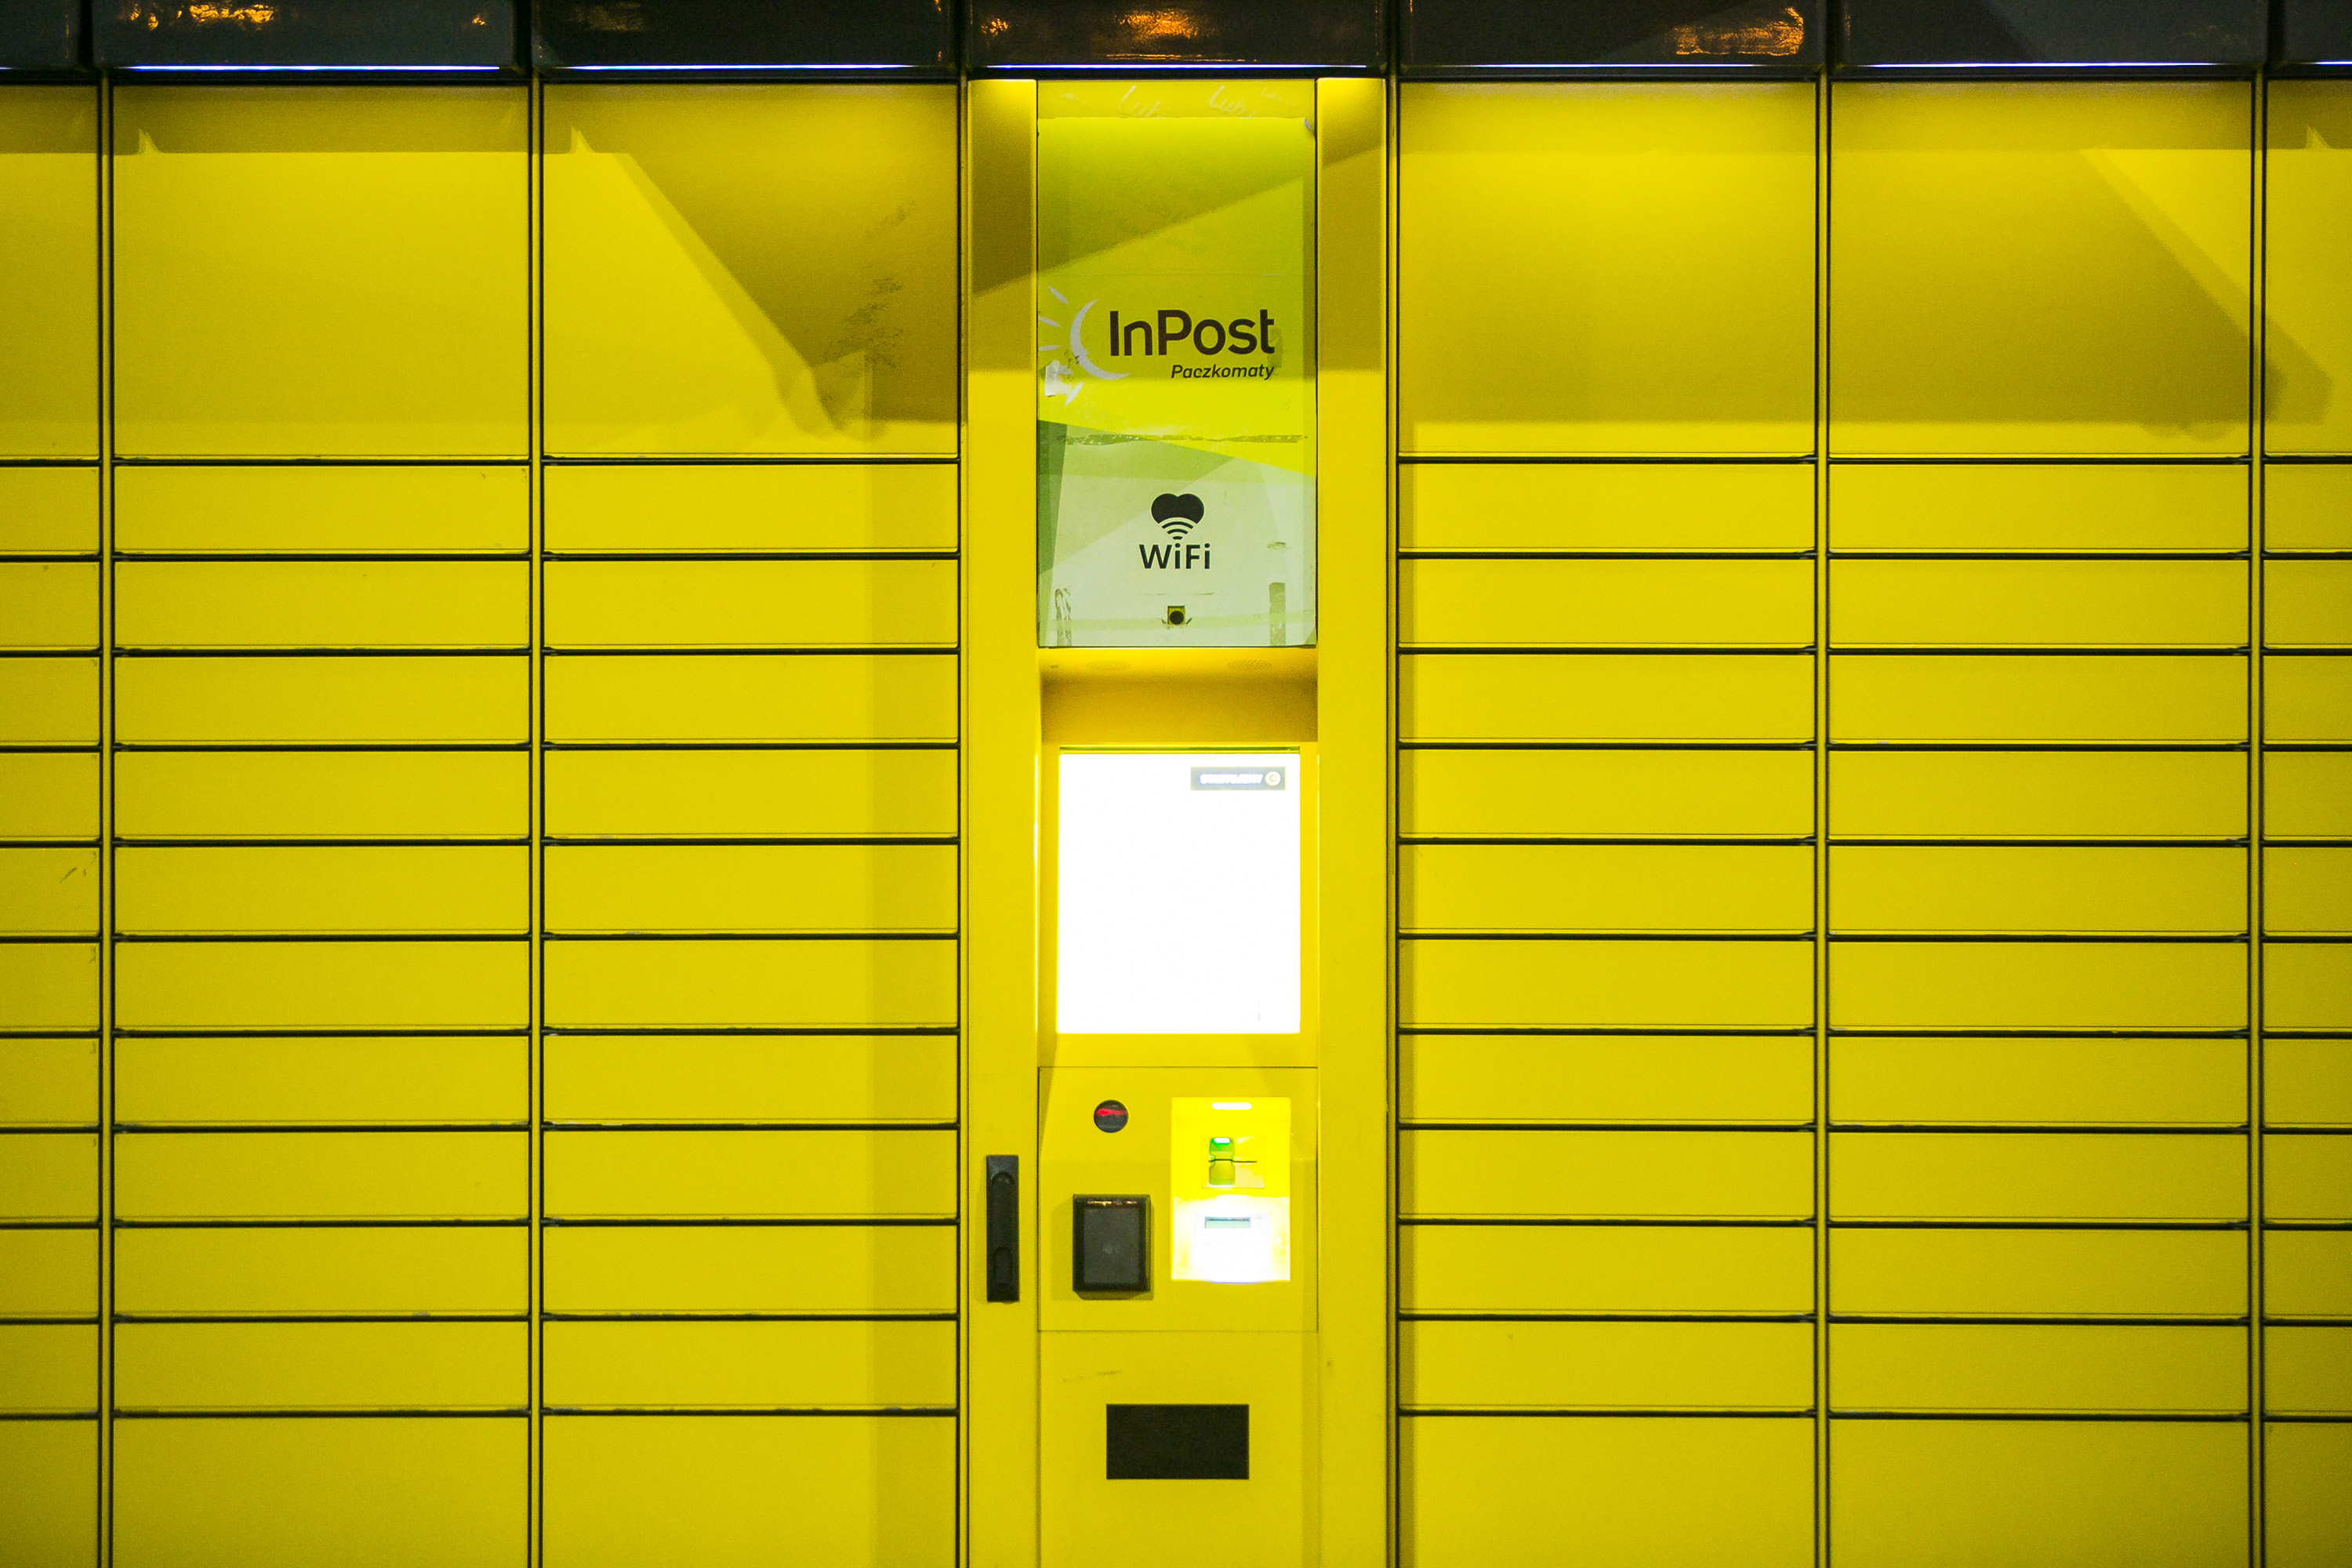 InPost is continuing a rollout of its automated machines in the U.K., while also evaluating expanding into markets such France, Spain and Italy.